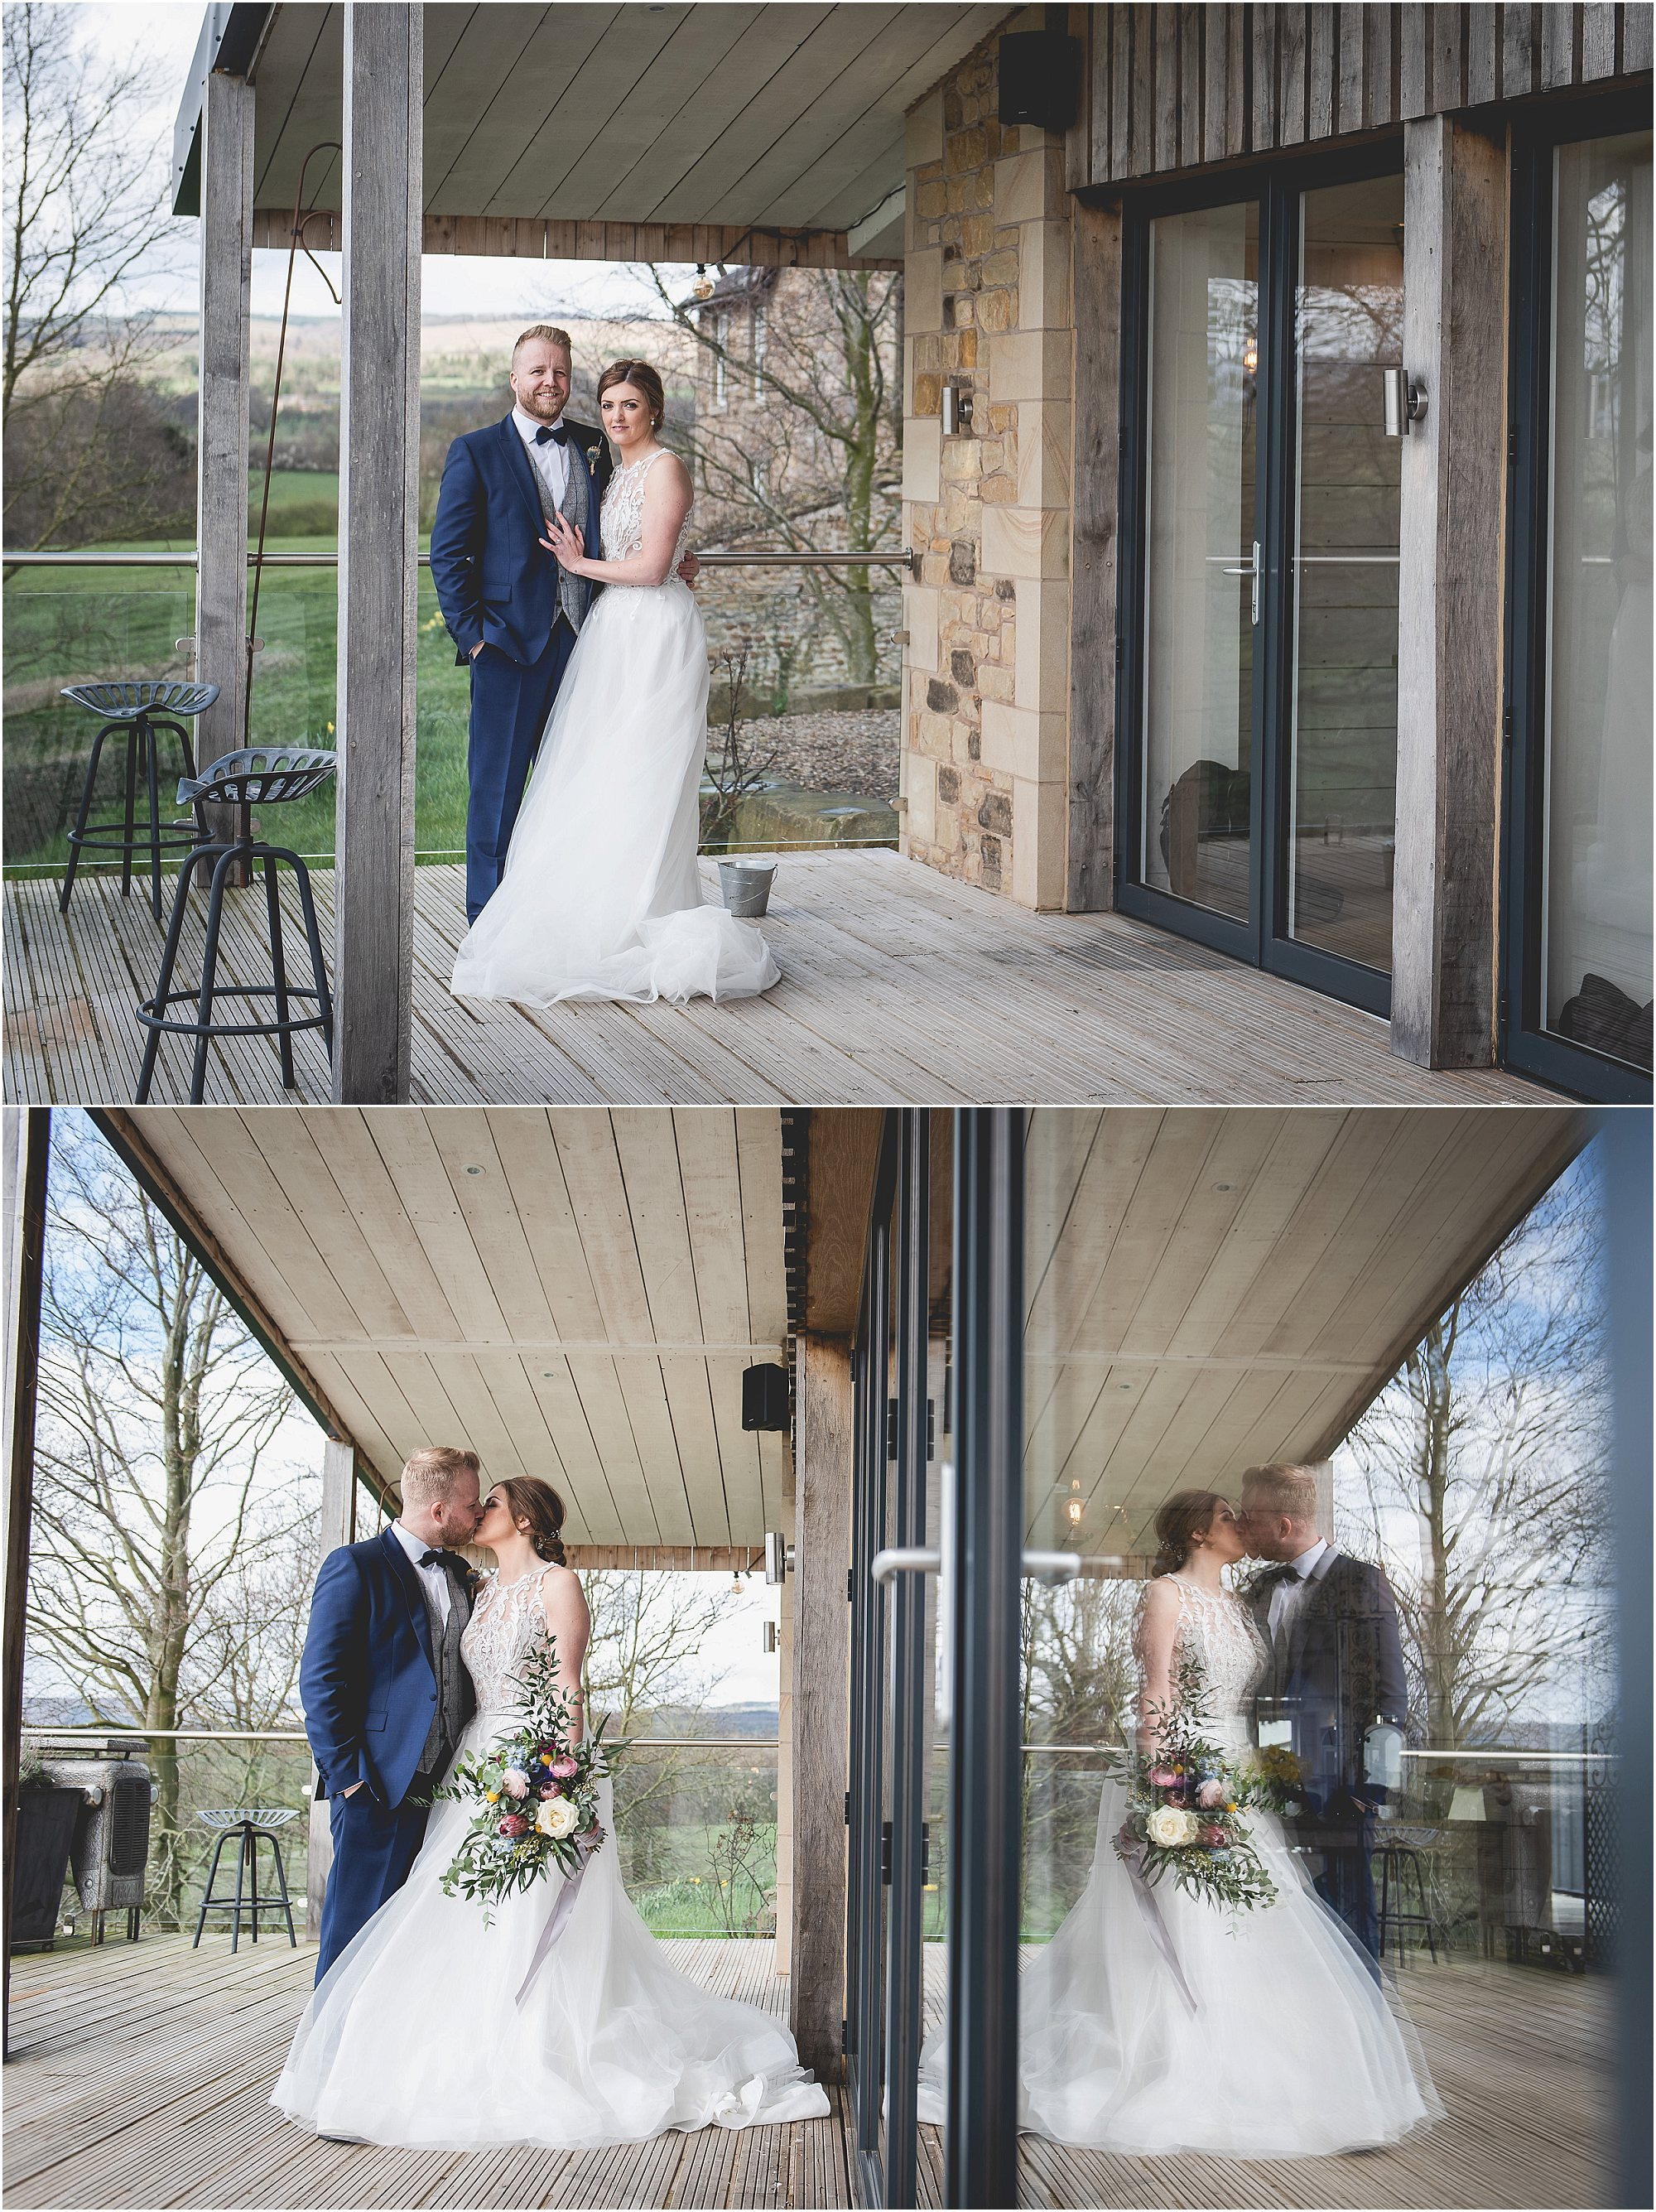 Reflection on their Wedding Day at Bashall Barn